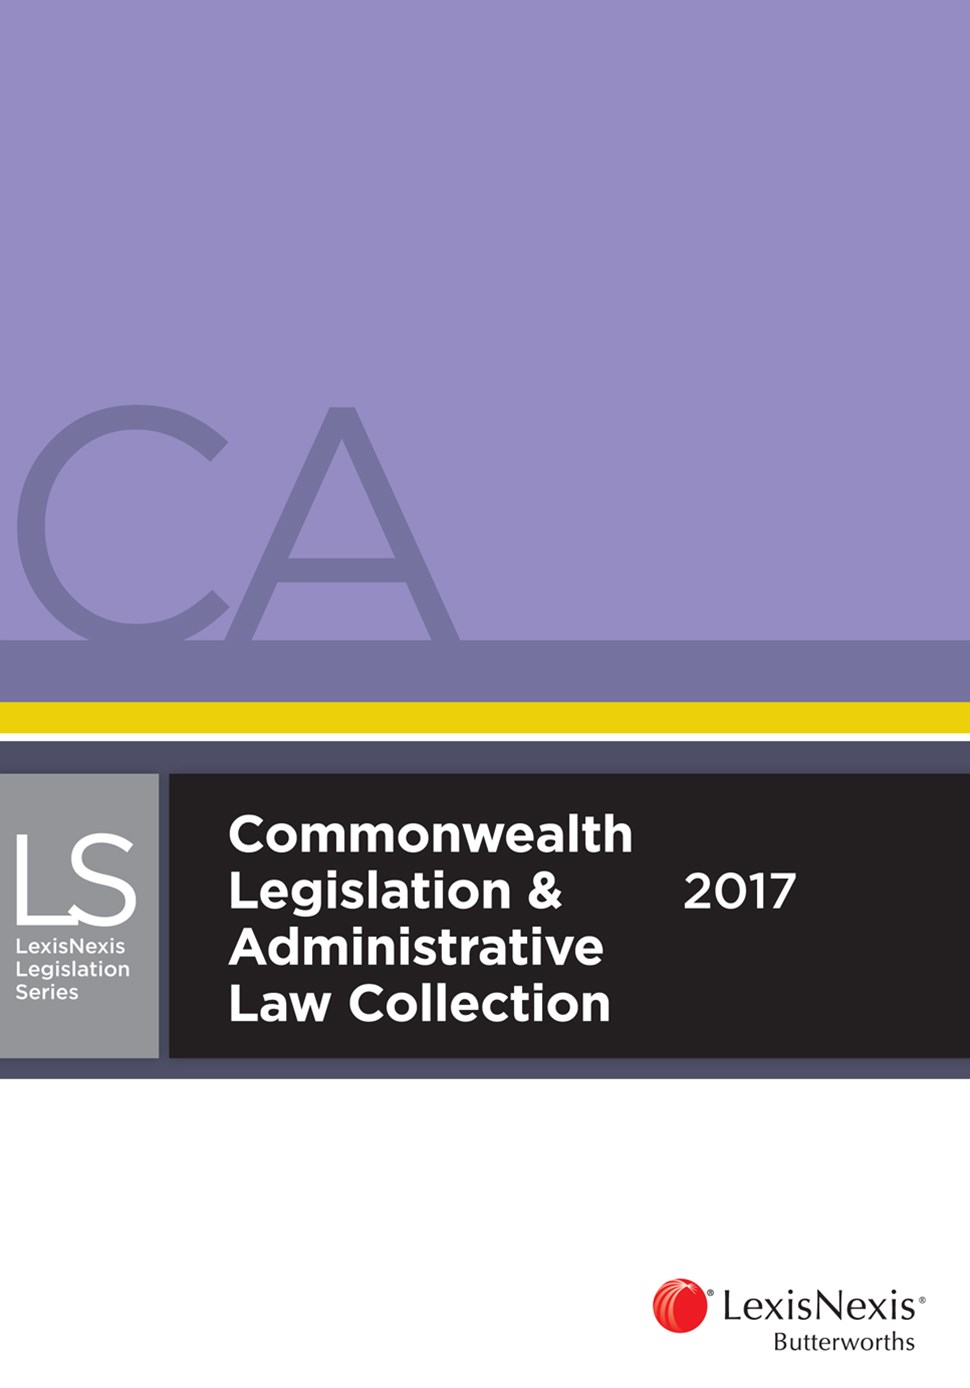 Commonwealth Legislation & Administrative Law Collection 2017